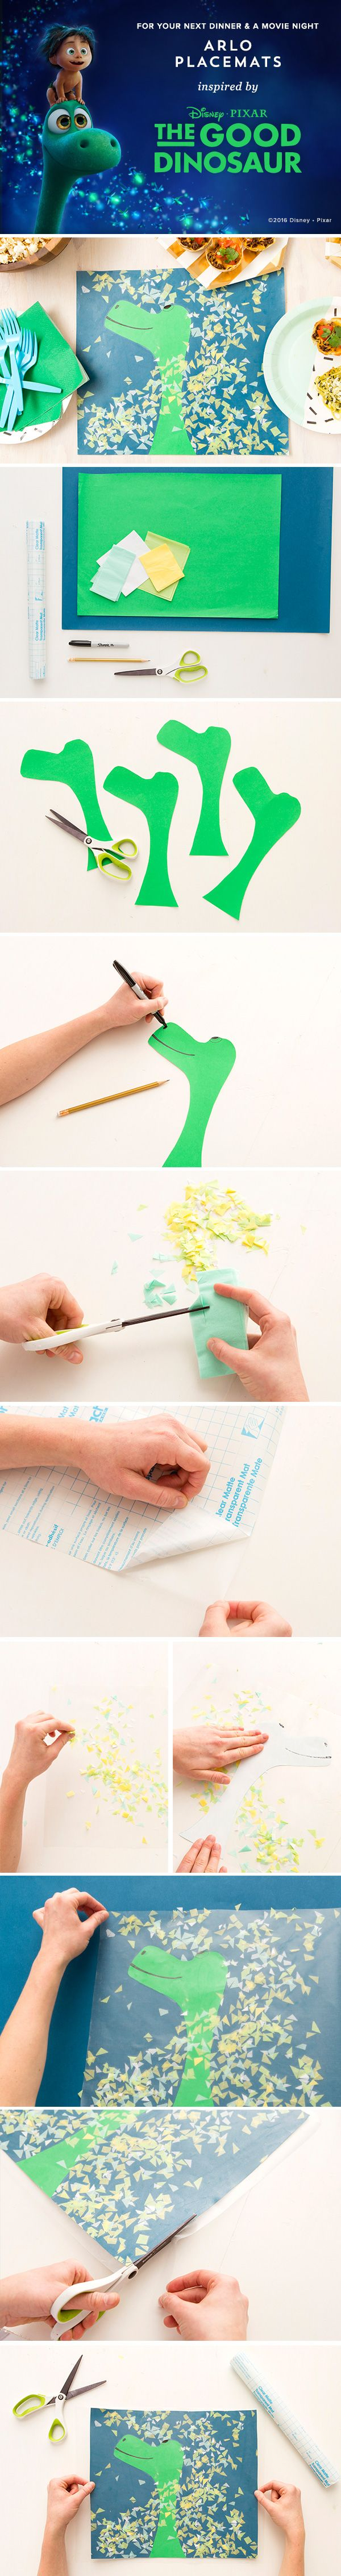 Create Arlo the Dinosaur Placemats 1) Draw+cut Arlo's head. 2) Draw eyes, nose+ mouth 3) Make confetti from tissue paper by folding it + cutting triangles. 4) Cut contact paper to the size of the placemat + peel off the backing. 5) Sprinkle confetti, add Arlo's head, add more confetti. 6) Place the contact paper on blue paper, press out air bubbles. Trim off excess paper. 7) Cut another piece of contact paper, peel off backing + press on placemat to seal. Trim excess contact paper around…